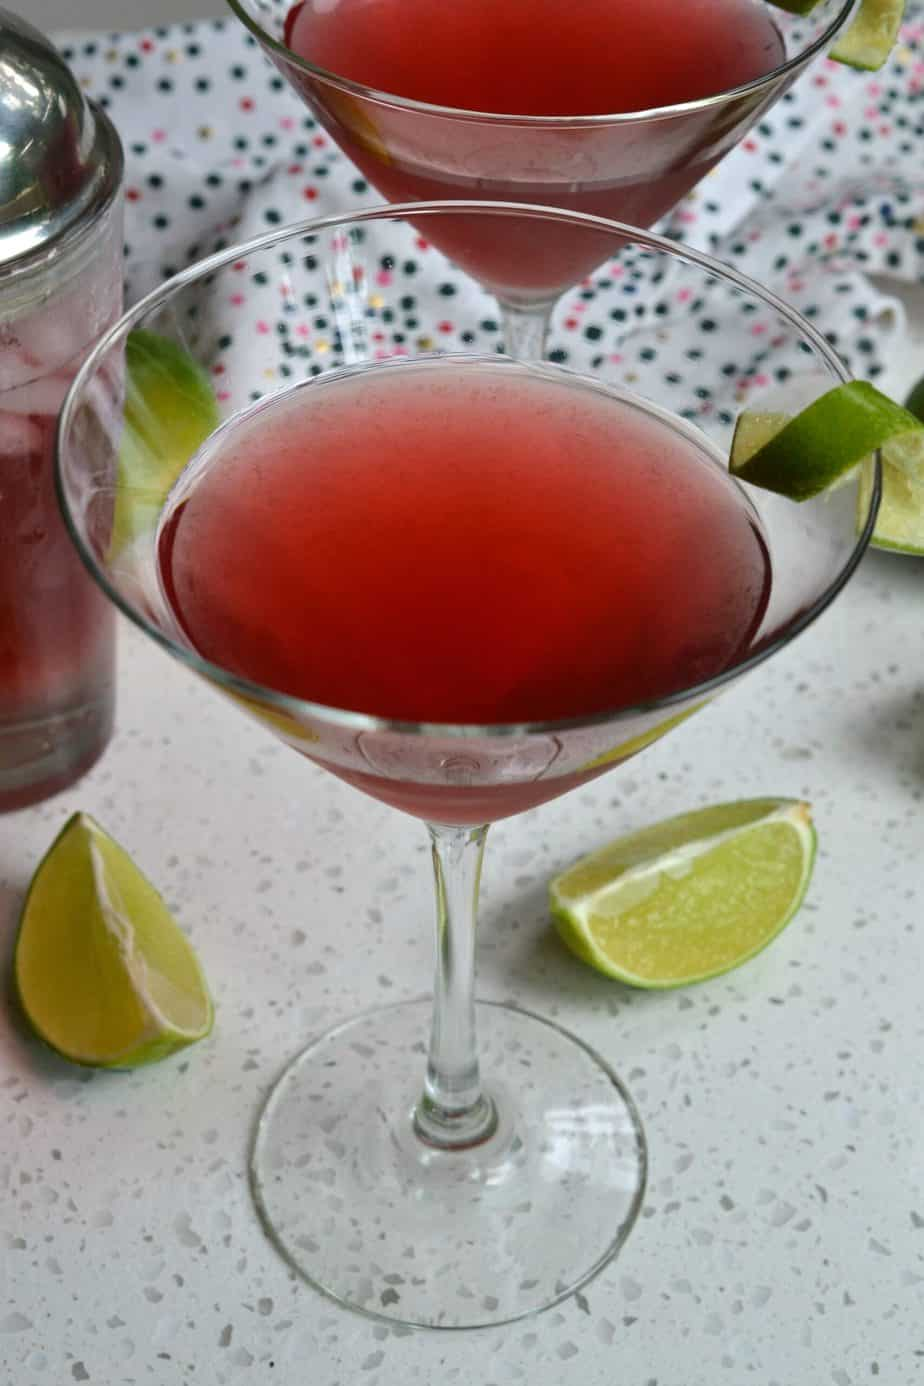 This tasty and gorgeous cranberry orange Cosmopolitan Drink is made in less than two minutes in a cocktail shaker.